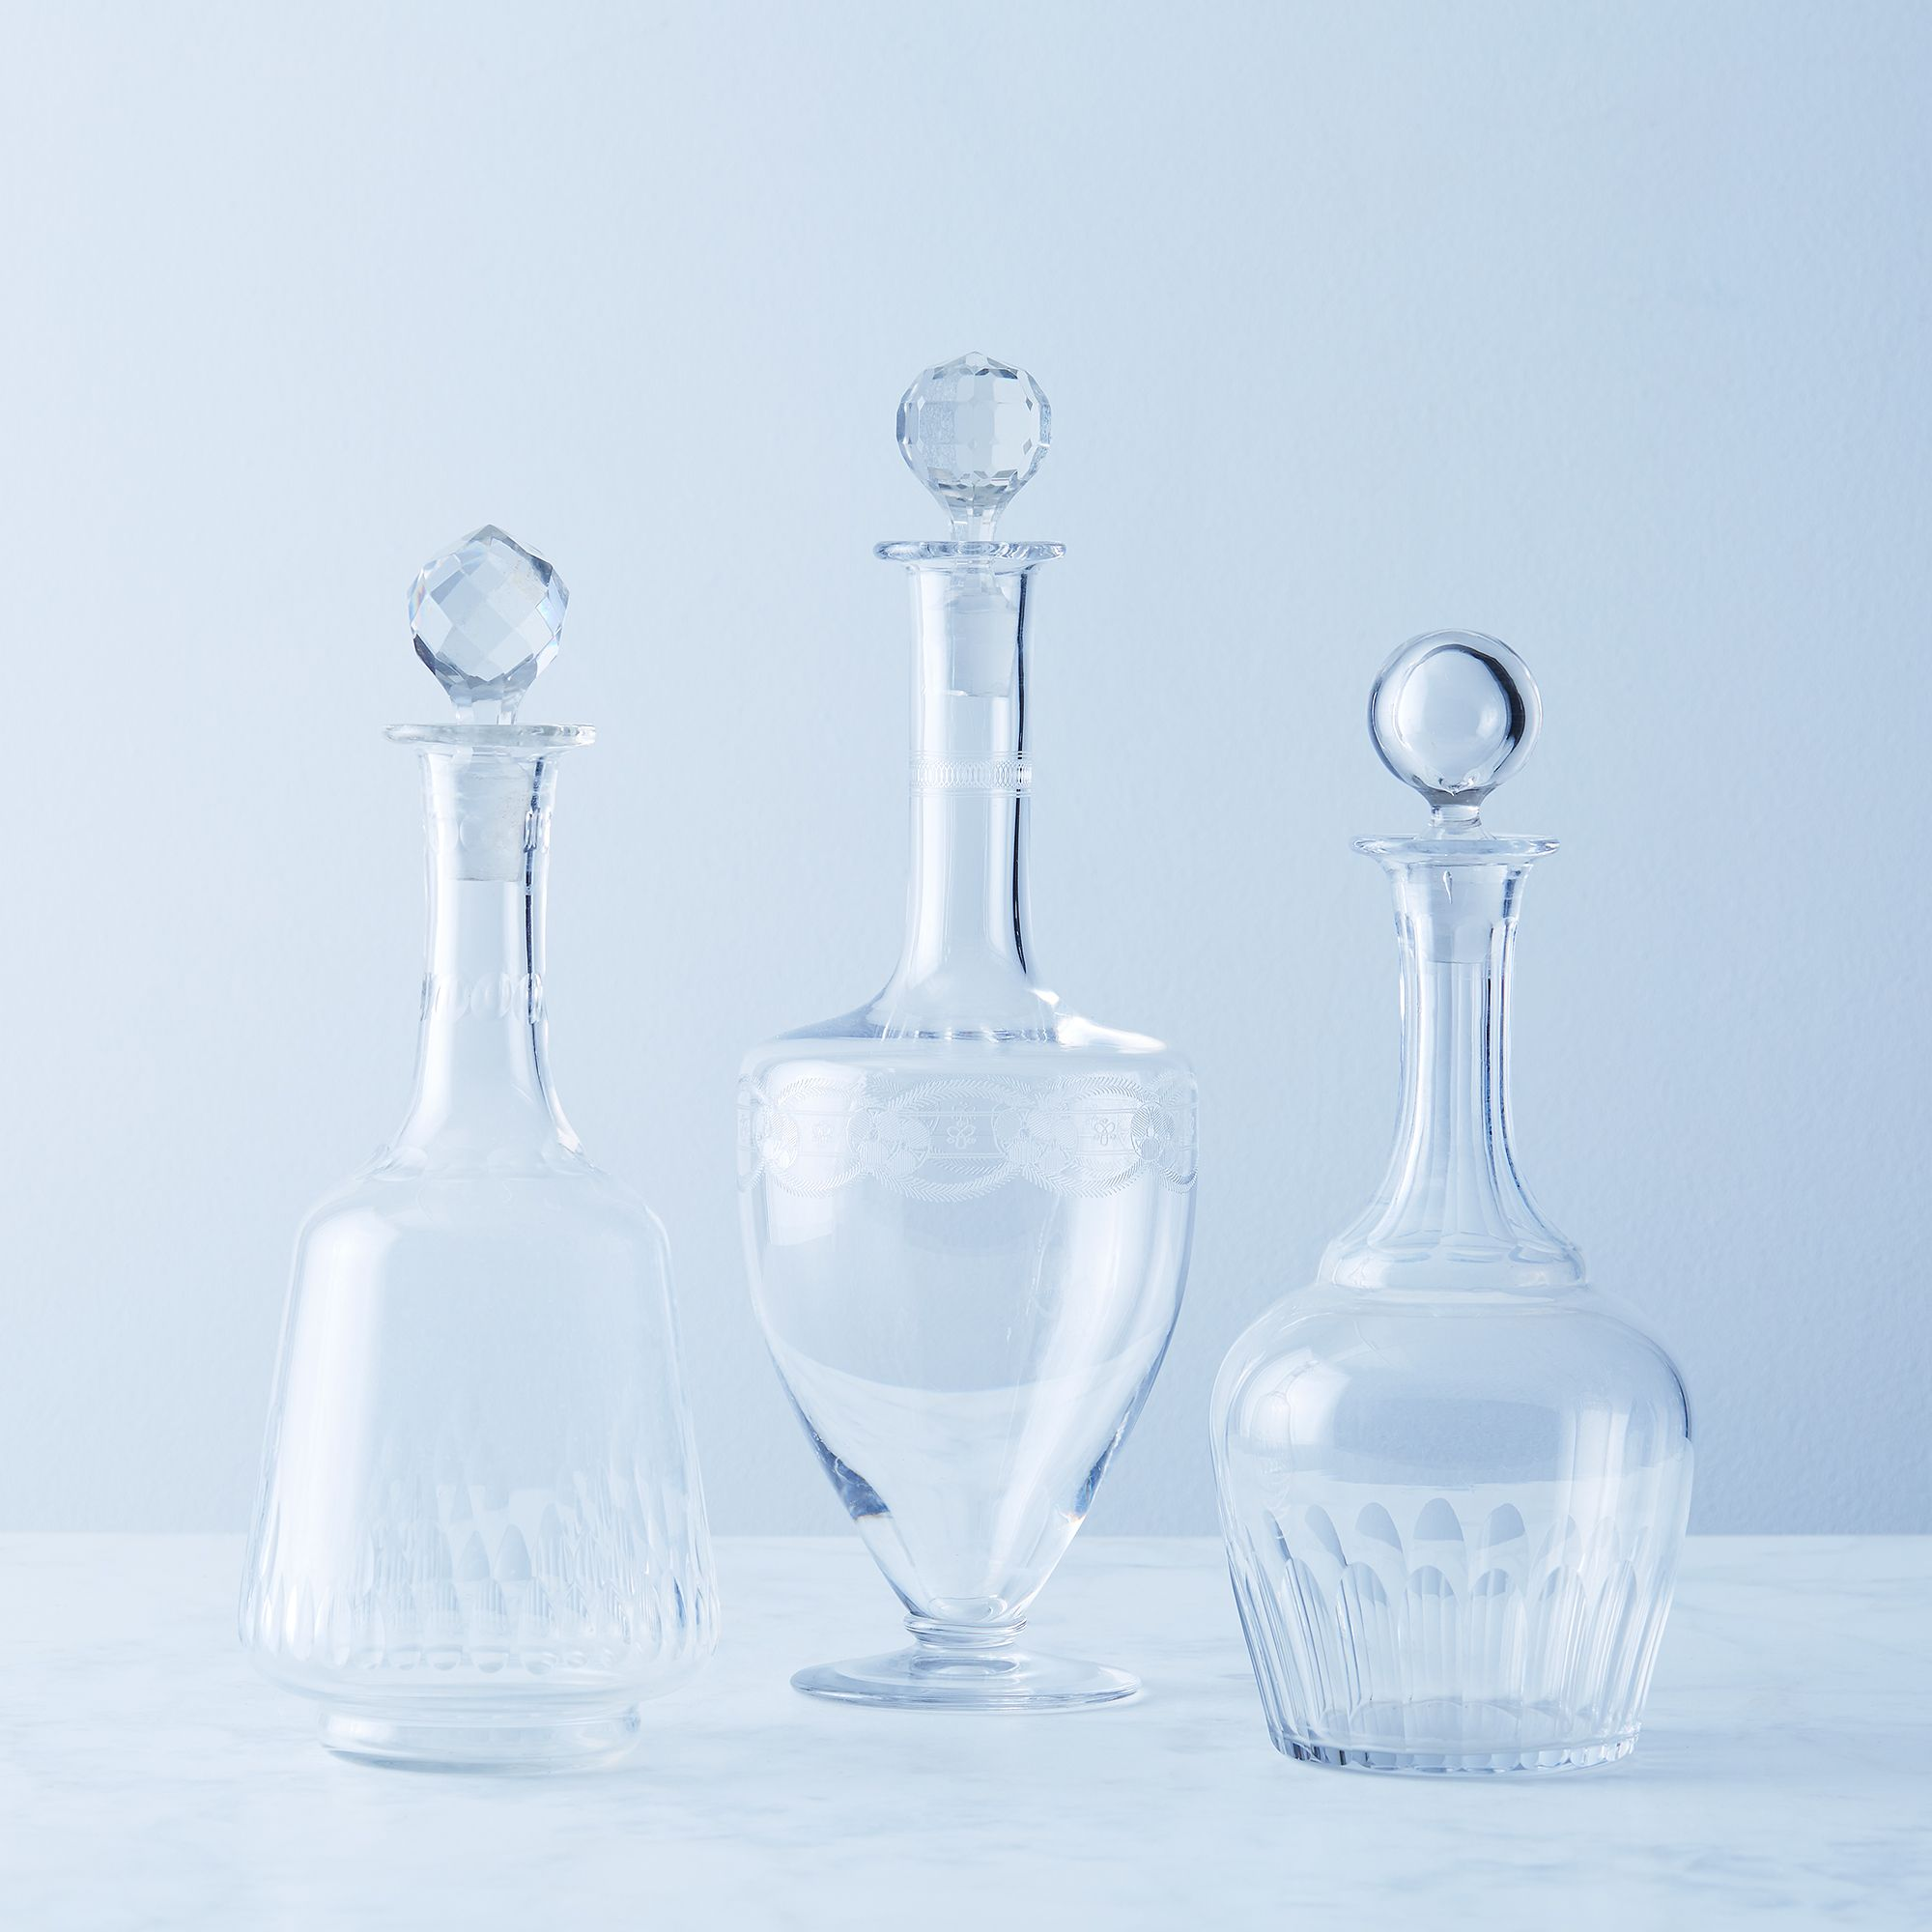 Glassware by Sammy